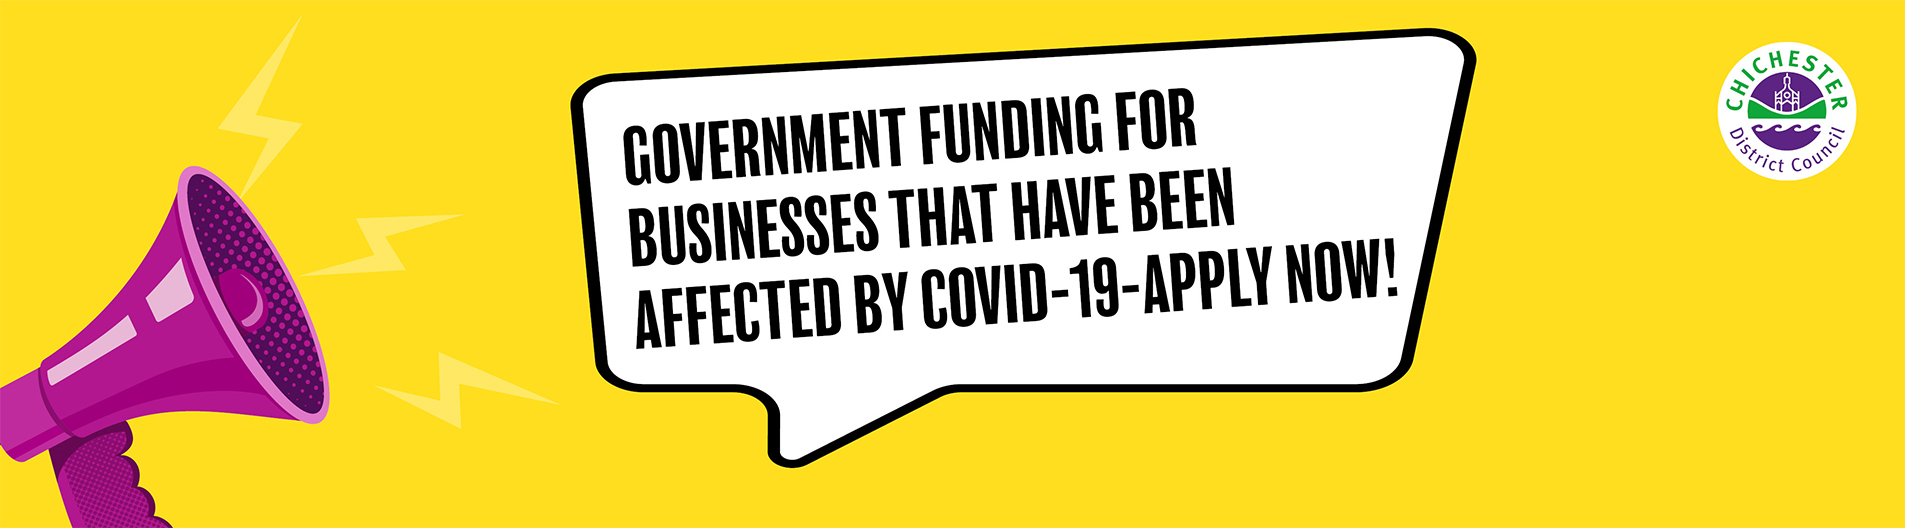 Government funding for businesses